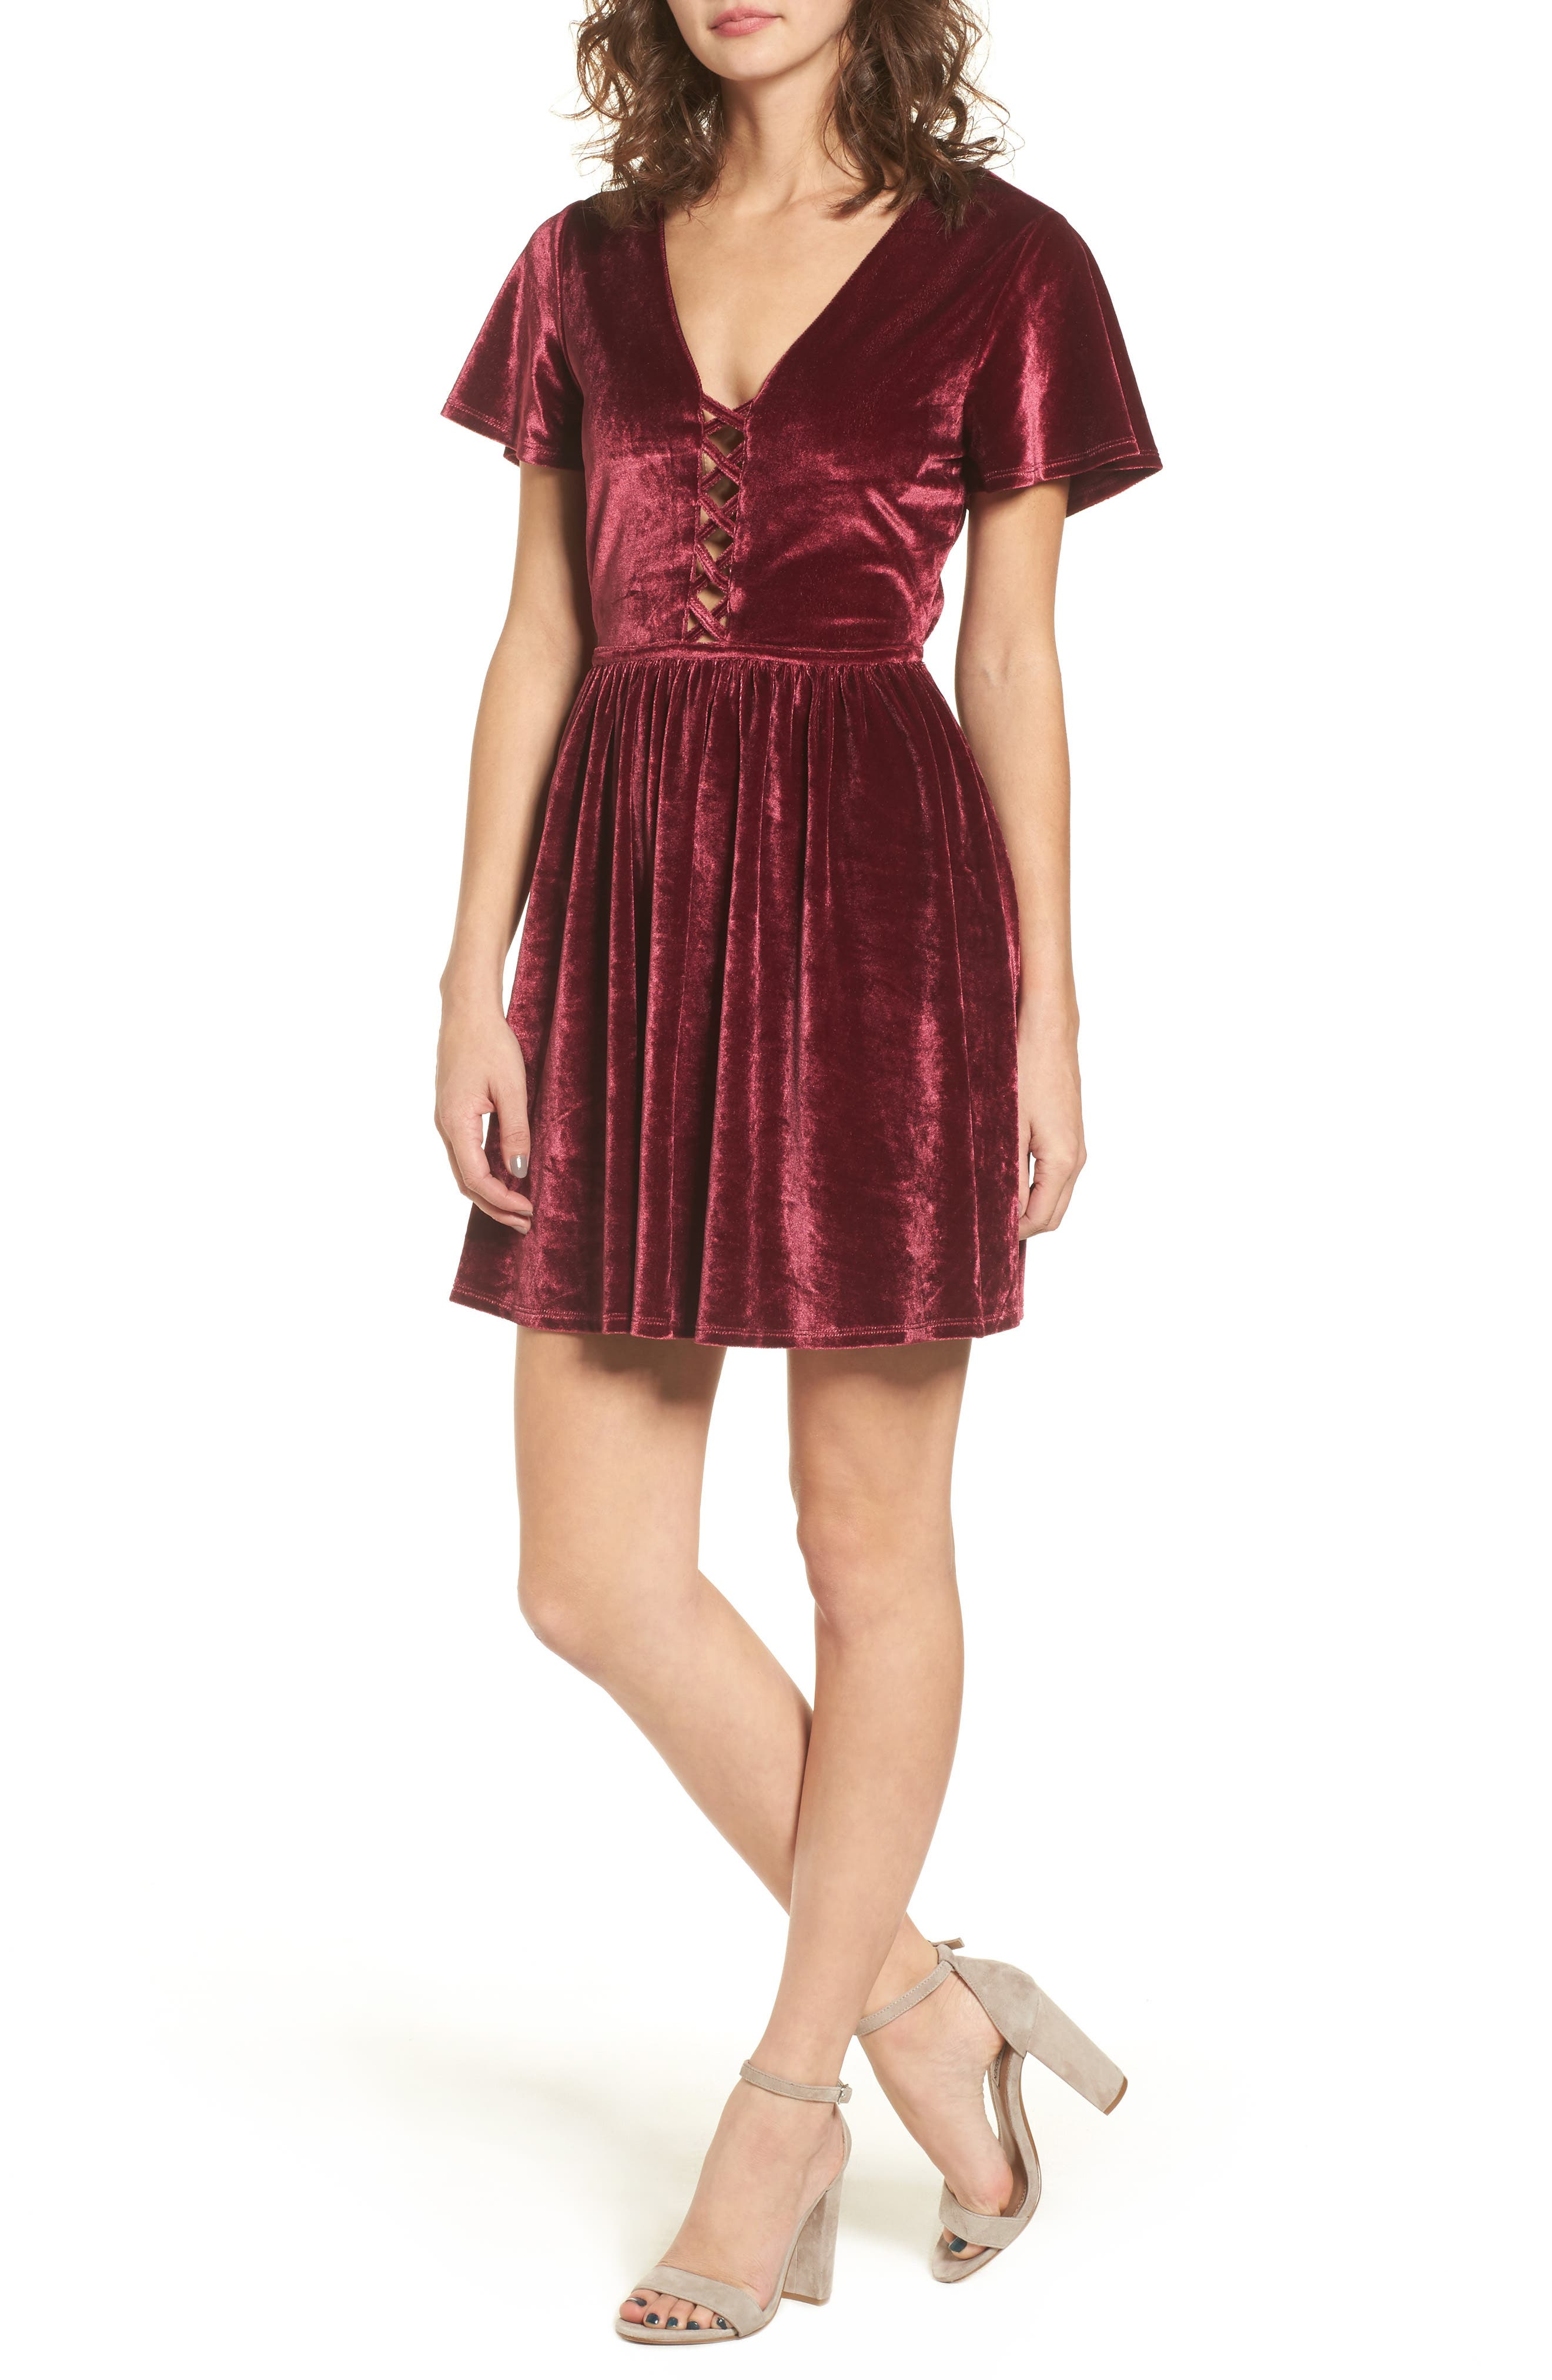 Velvacious Dress,                             Main thumbnail 1, color,                             Burgundy